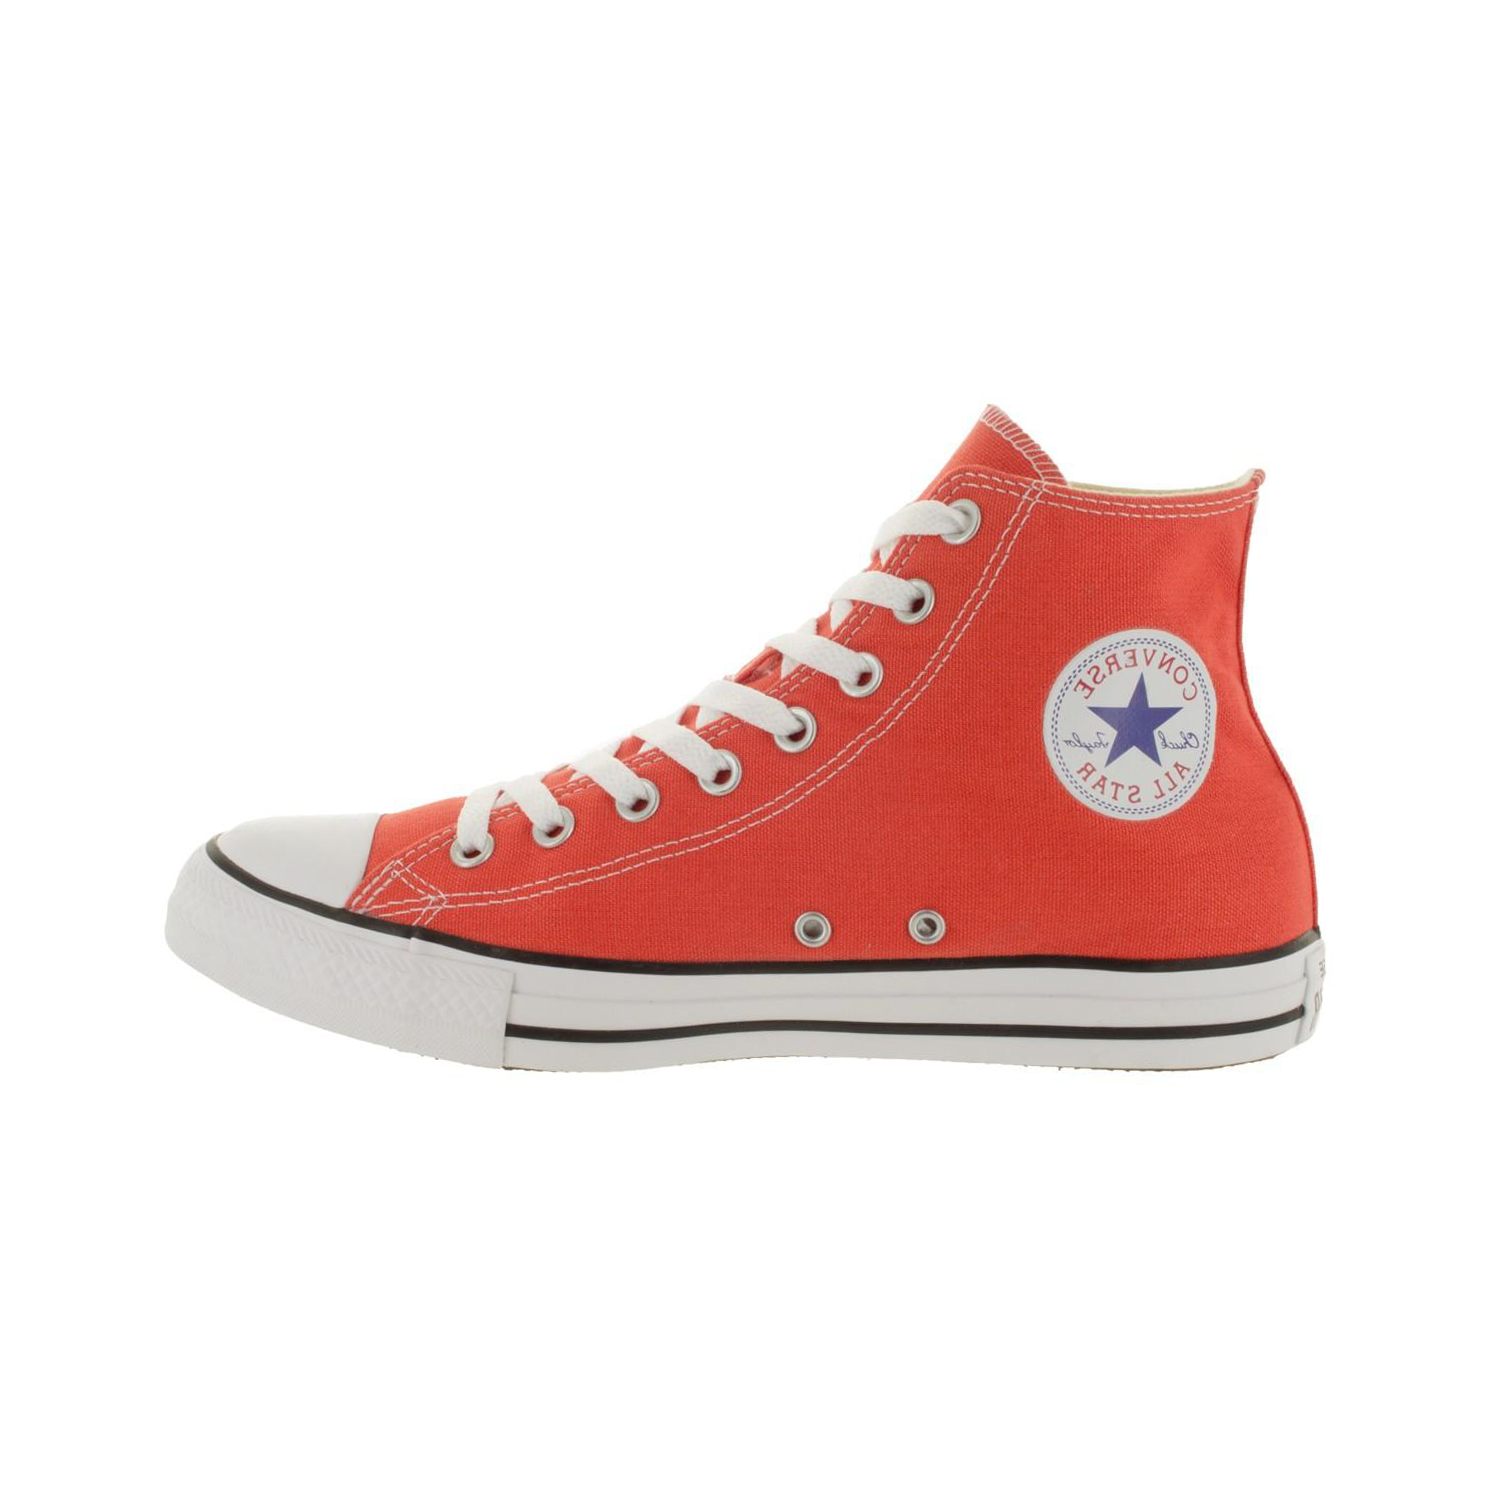 CONVERSE CHUCK TAYLOR ALL STAR HIGH TOP - MY VAN IS ON - Lace Up NYC